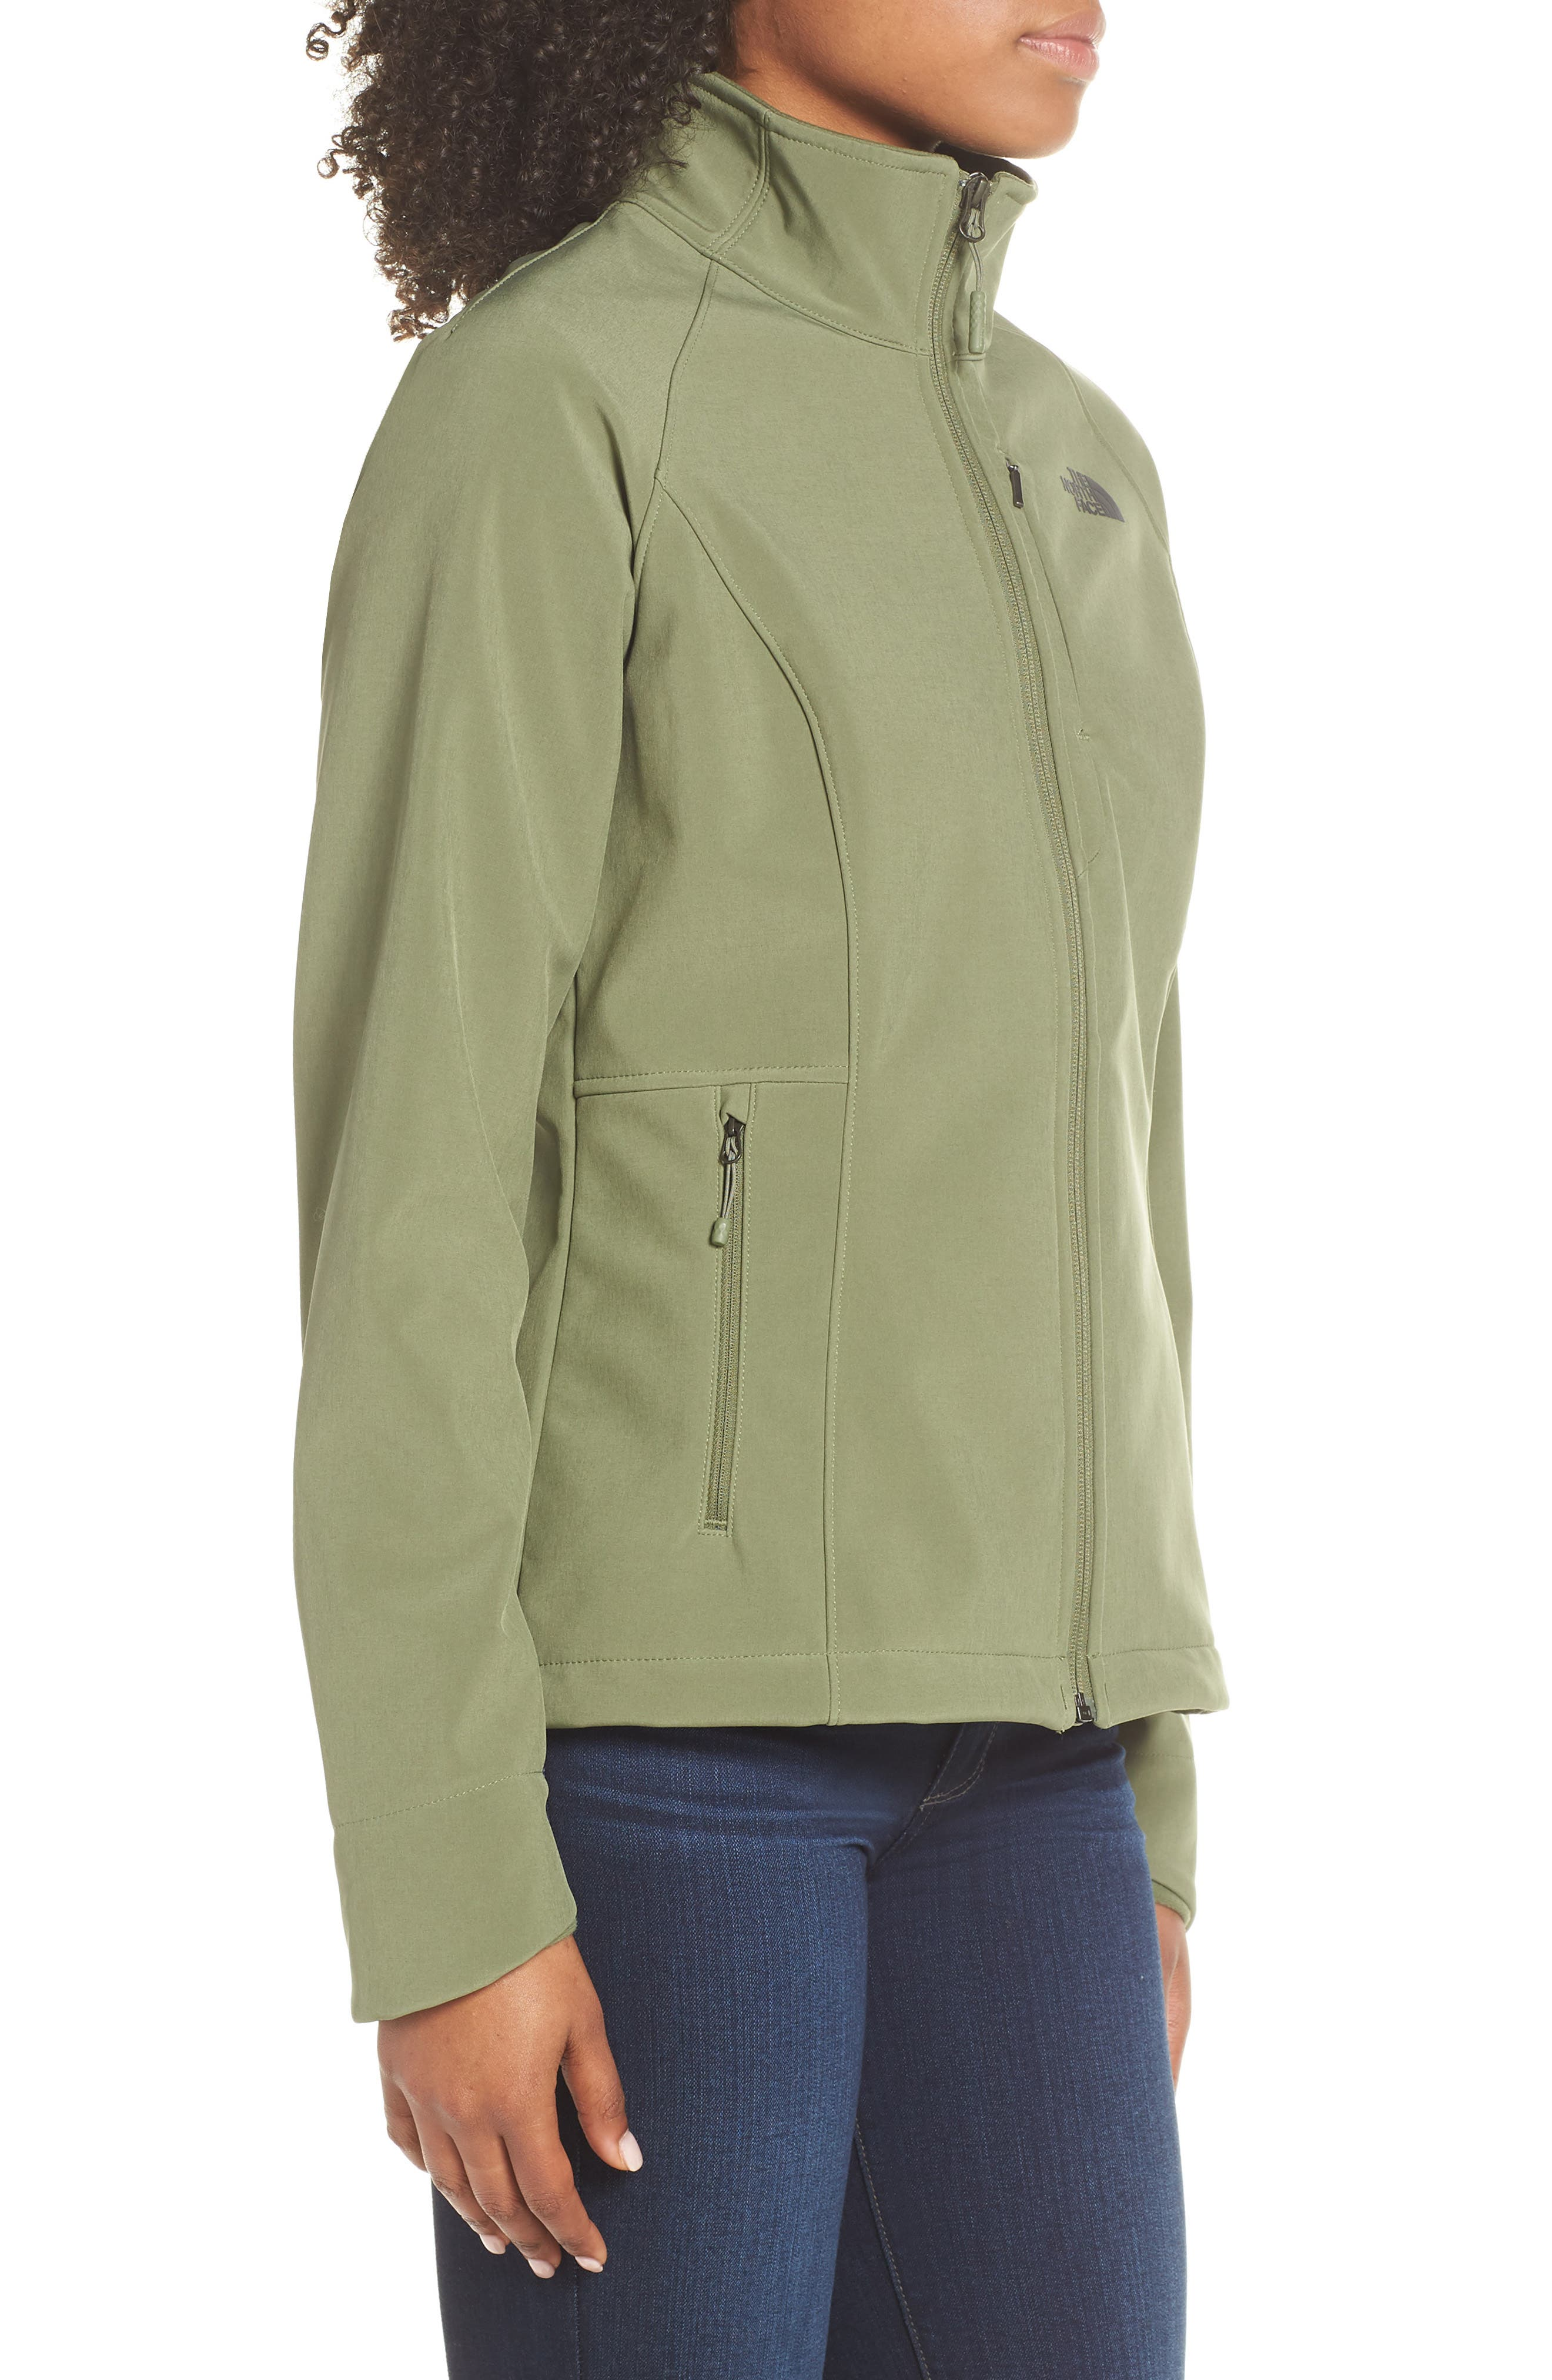 THE NORTH FACE, 'Apex Bionic 2' Jacket, Alternate thumbnail 3, color, 301